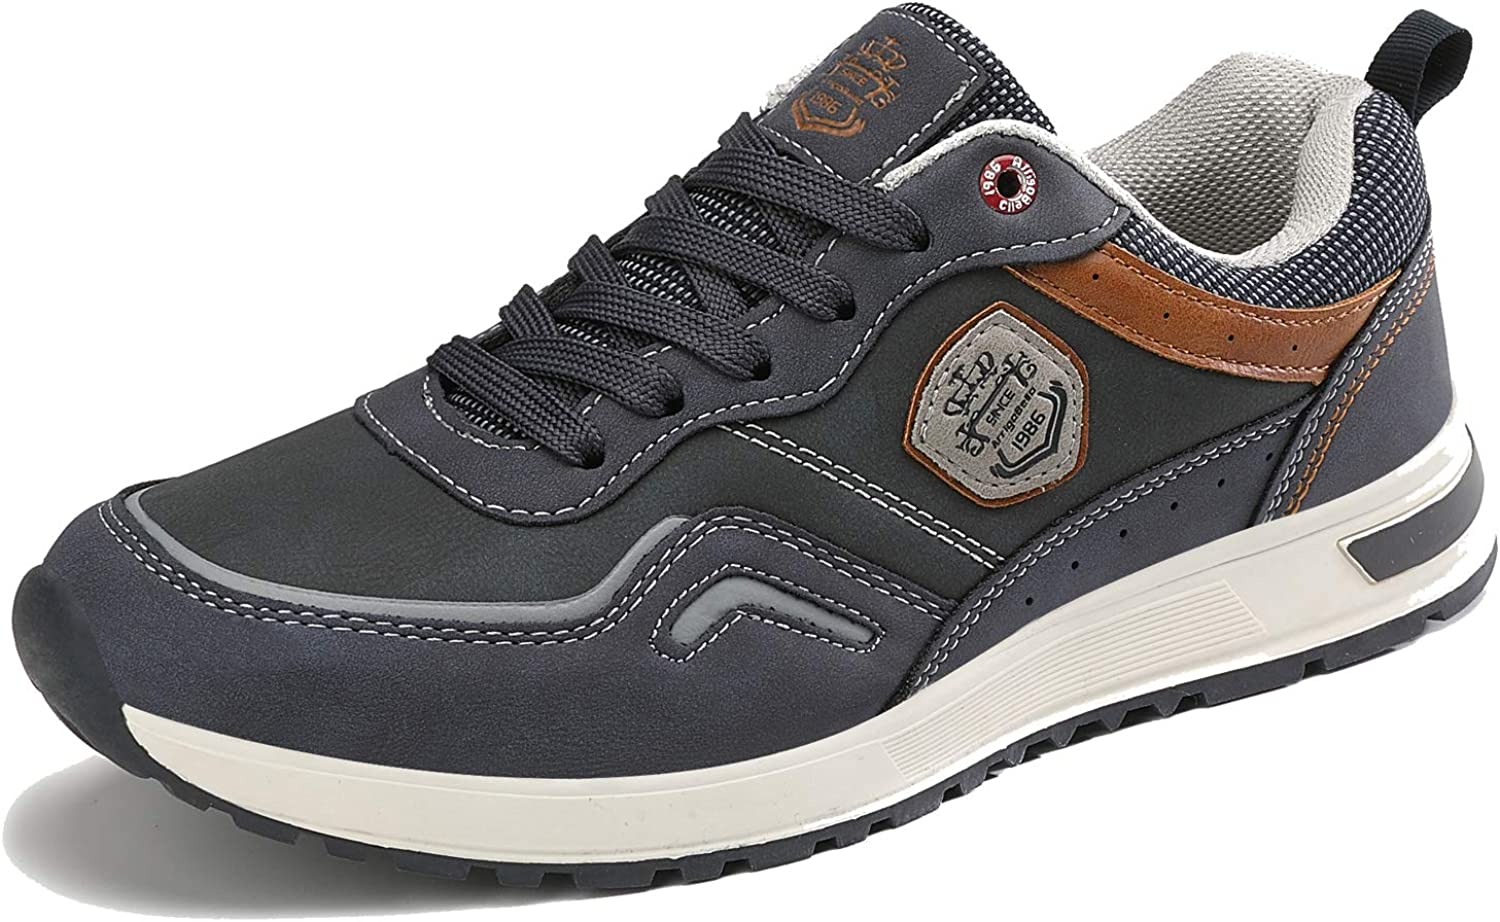 ARRIGO BELLO Mens Casual Shoes Trainers Walking Hiking Jogging Classic Business Outdoor Sneakers Running Size 7-11